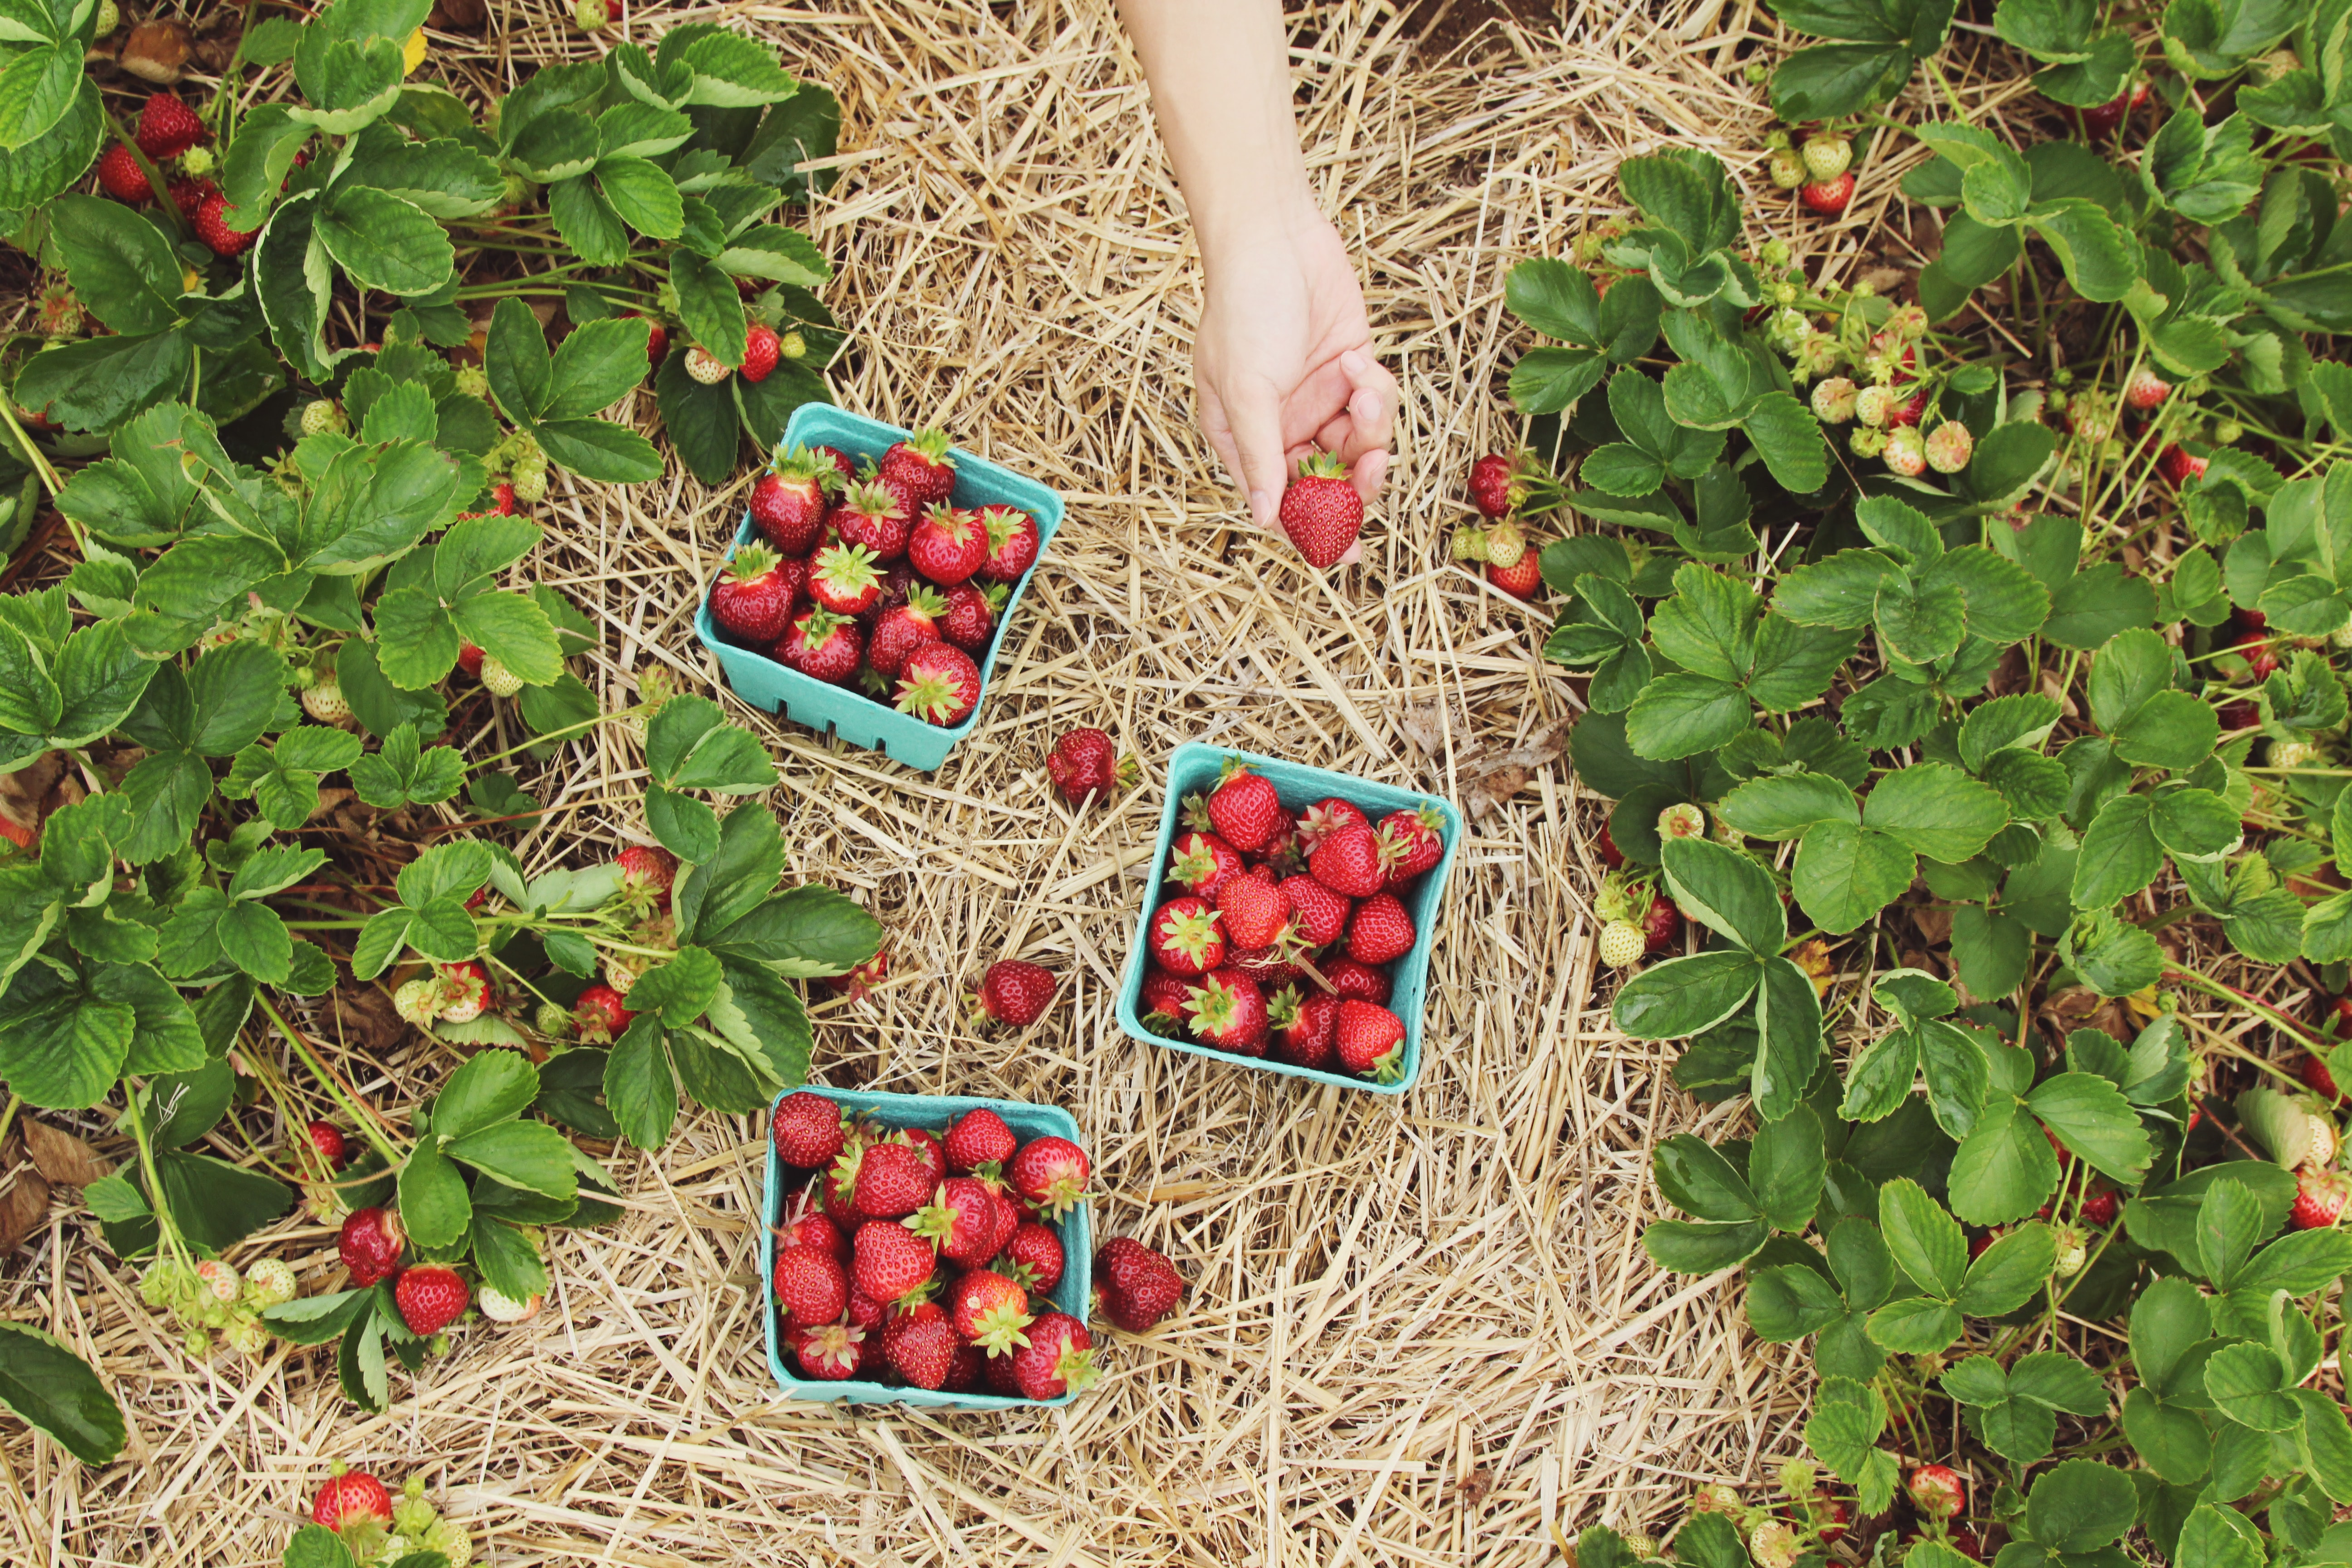 strawberries in blue baskets